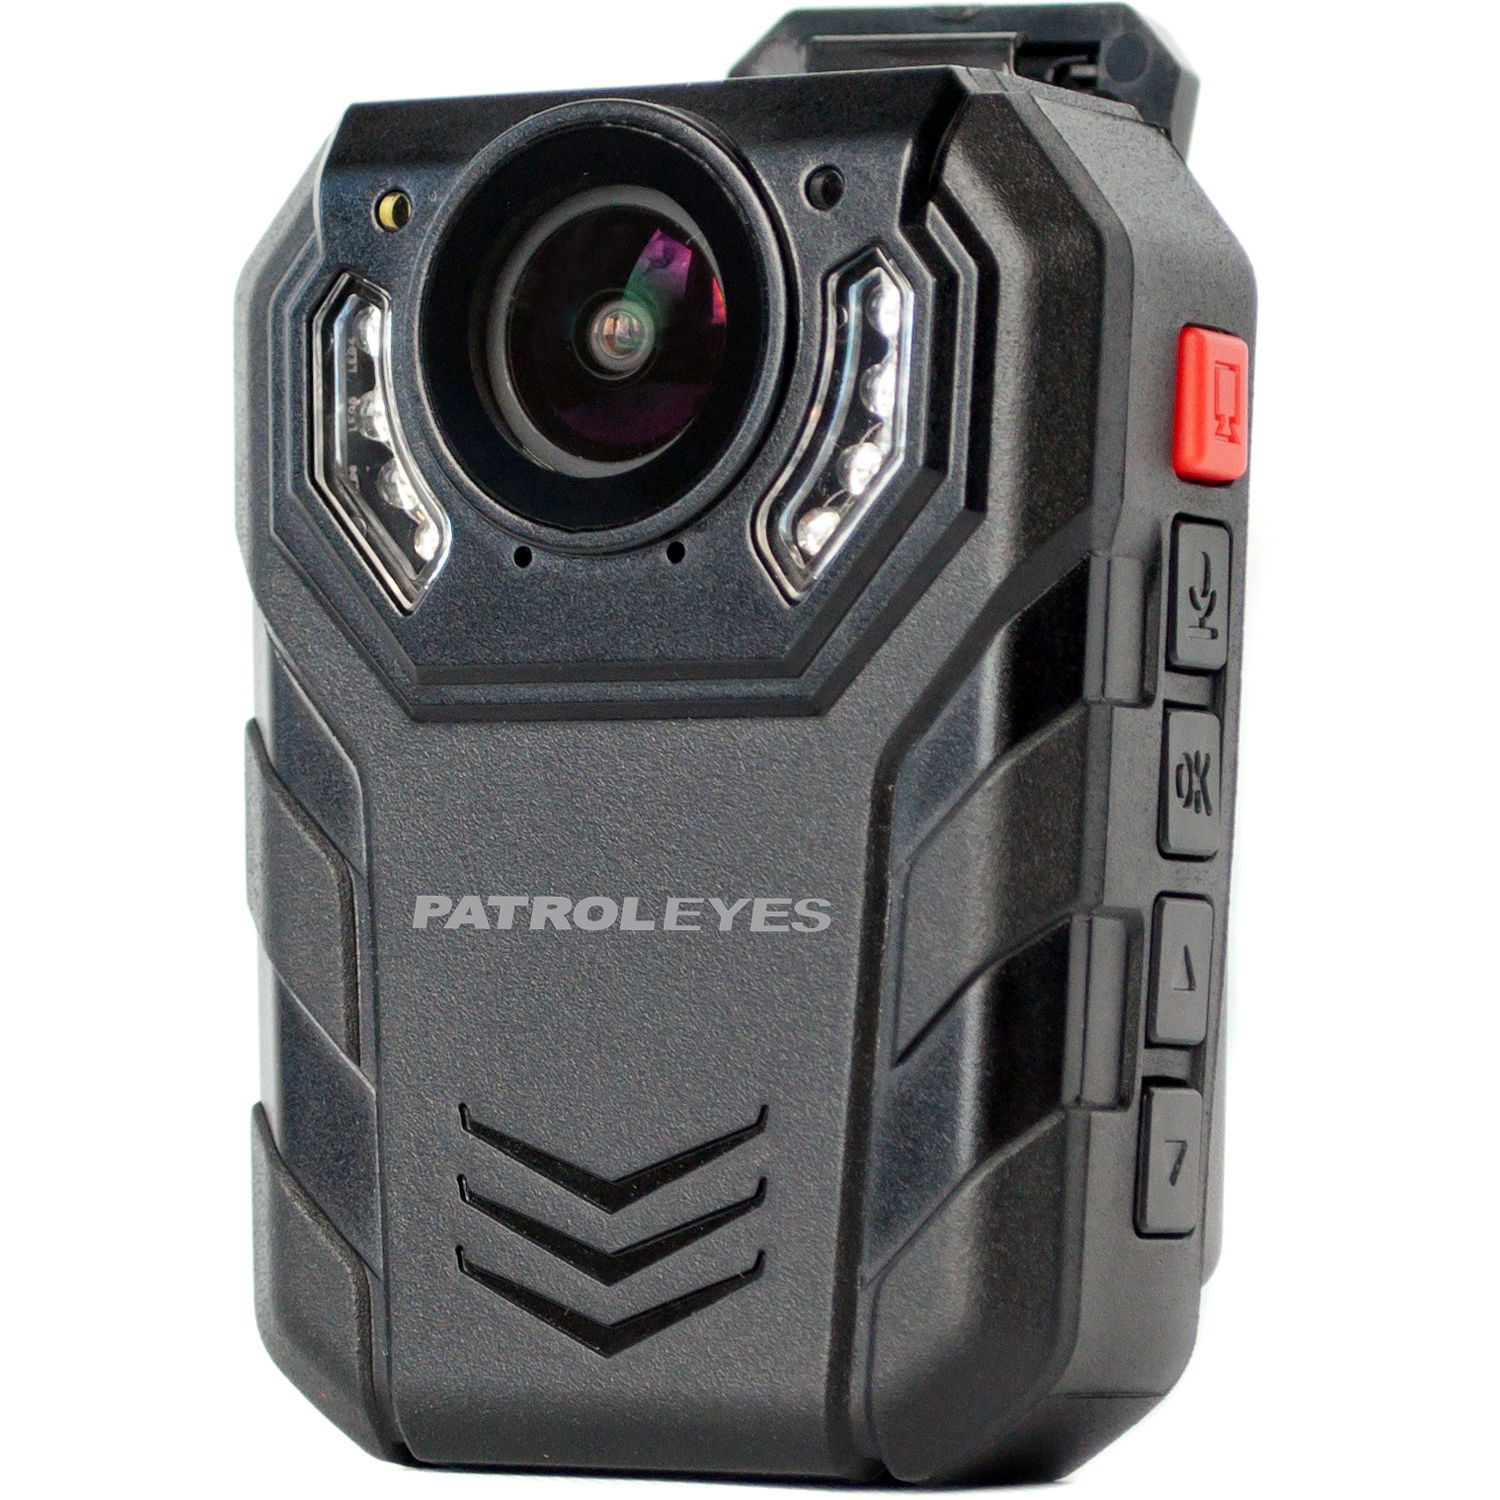 PatrolEyes SC-DV7 Ultra 1296p Body Camera with Night SC-DV7 B&H